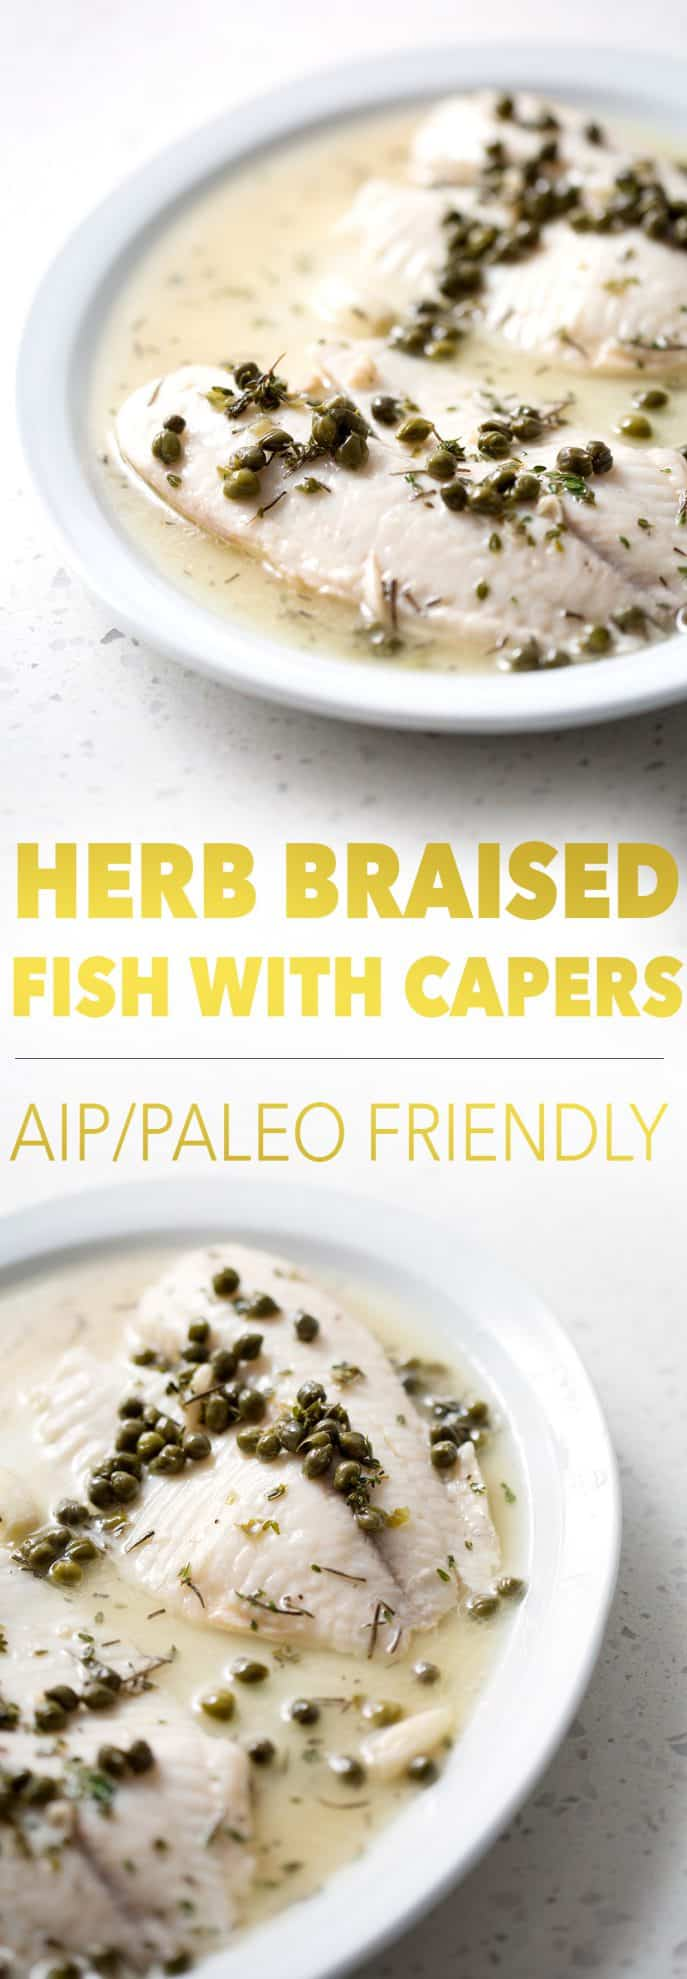 platters of aip/paleo friendly fish with capers and sauce